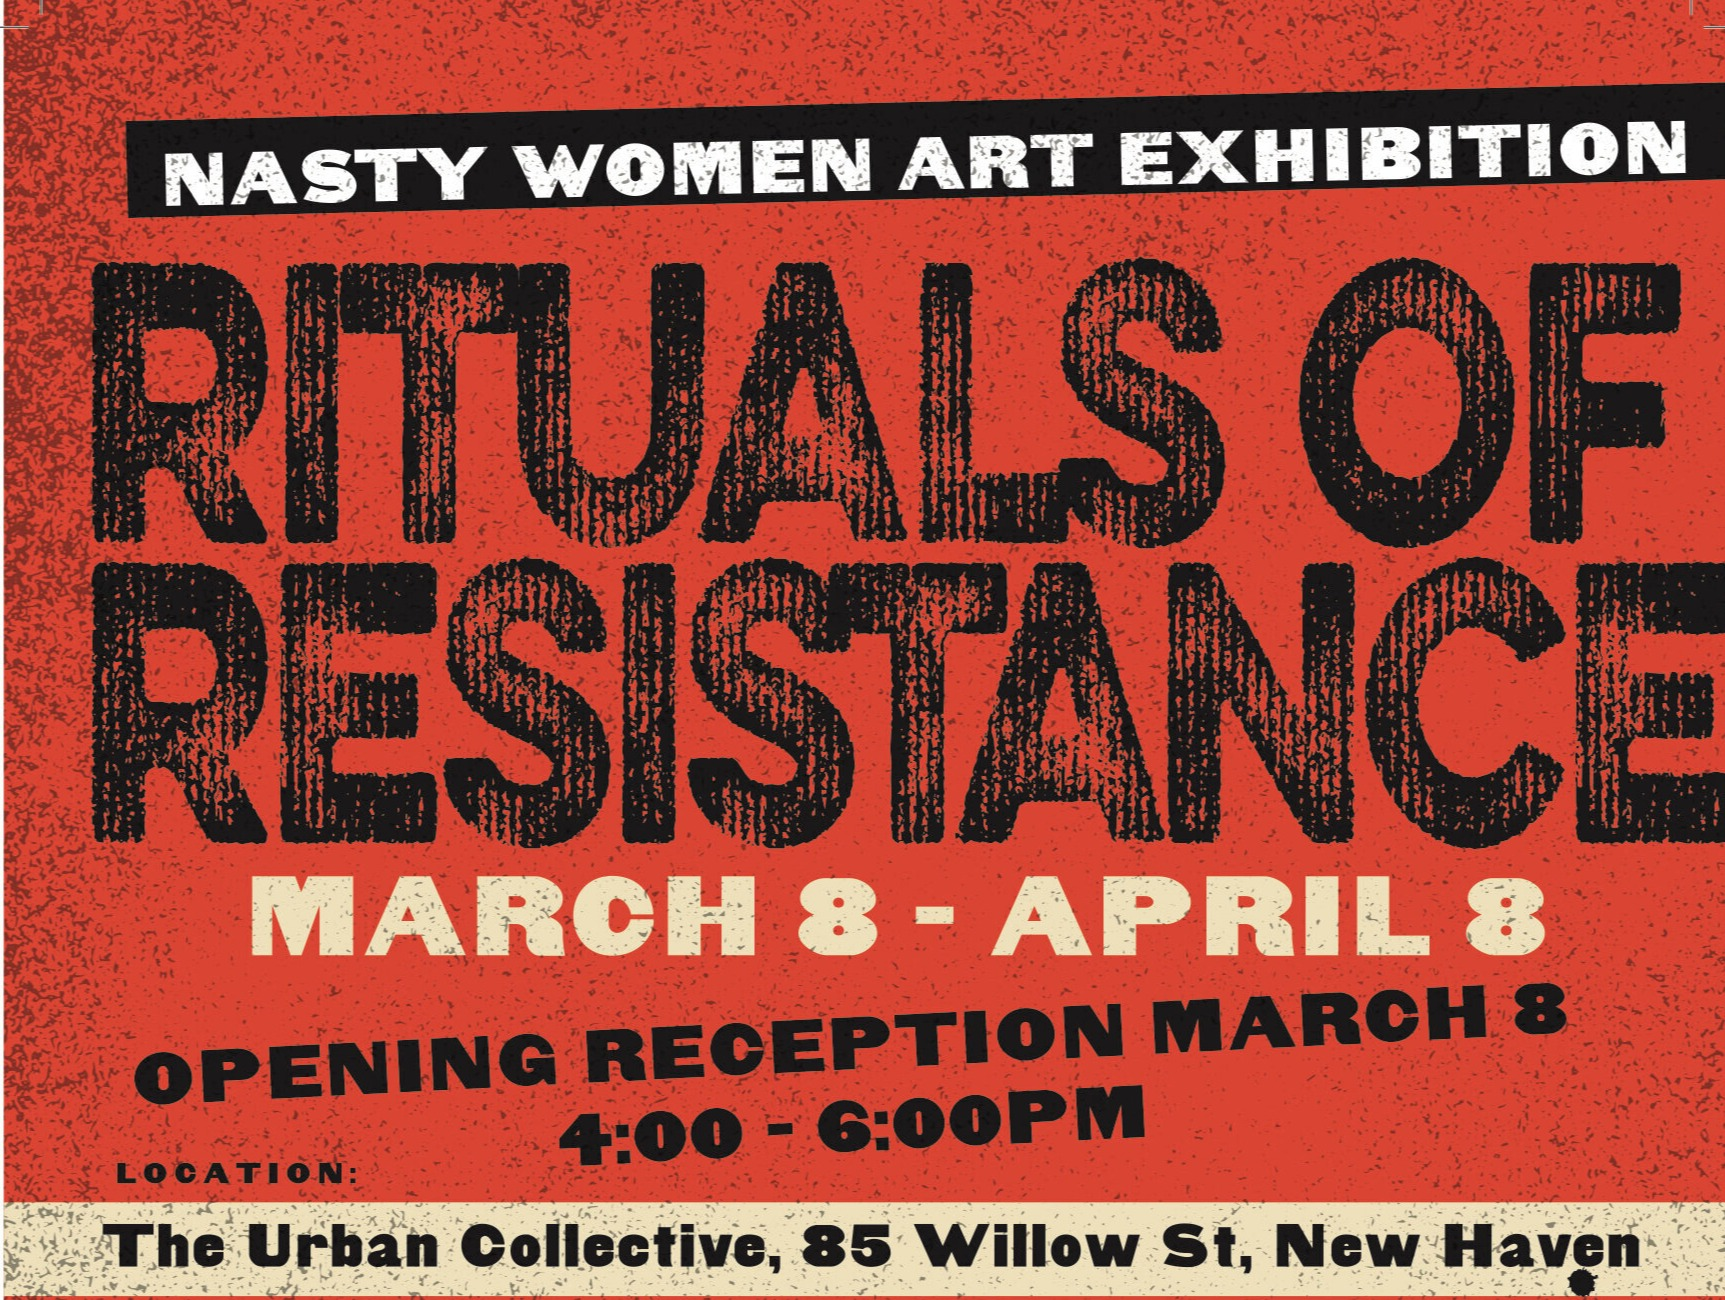 Rituals of Resistance